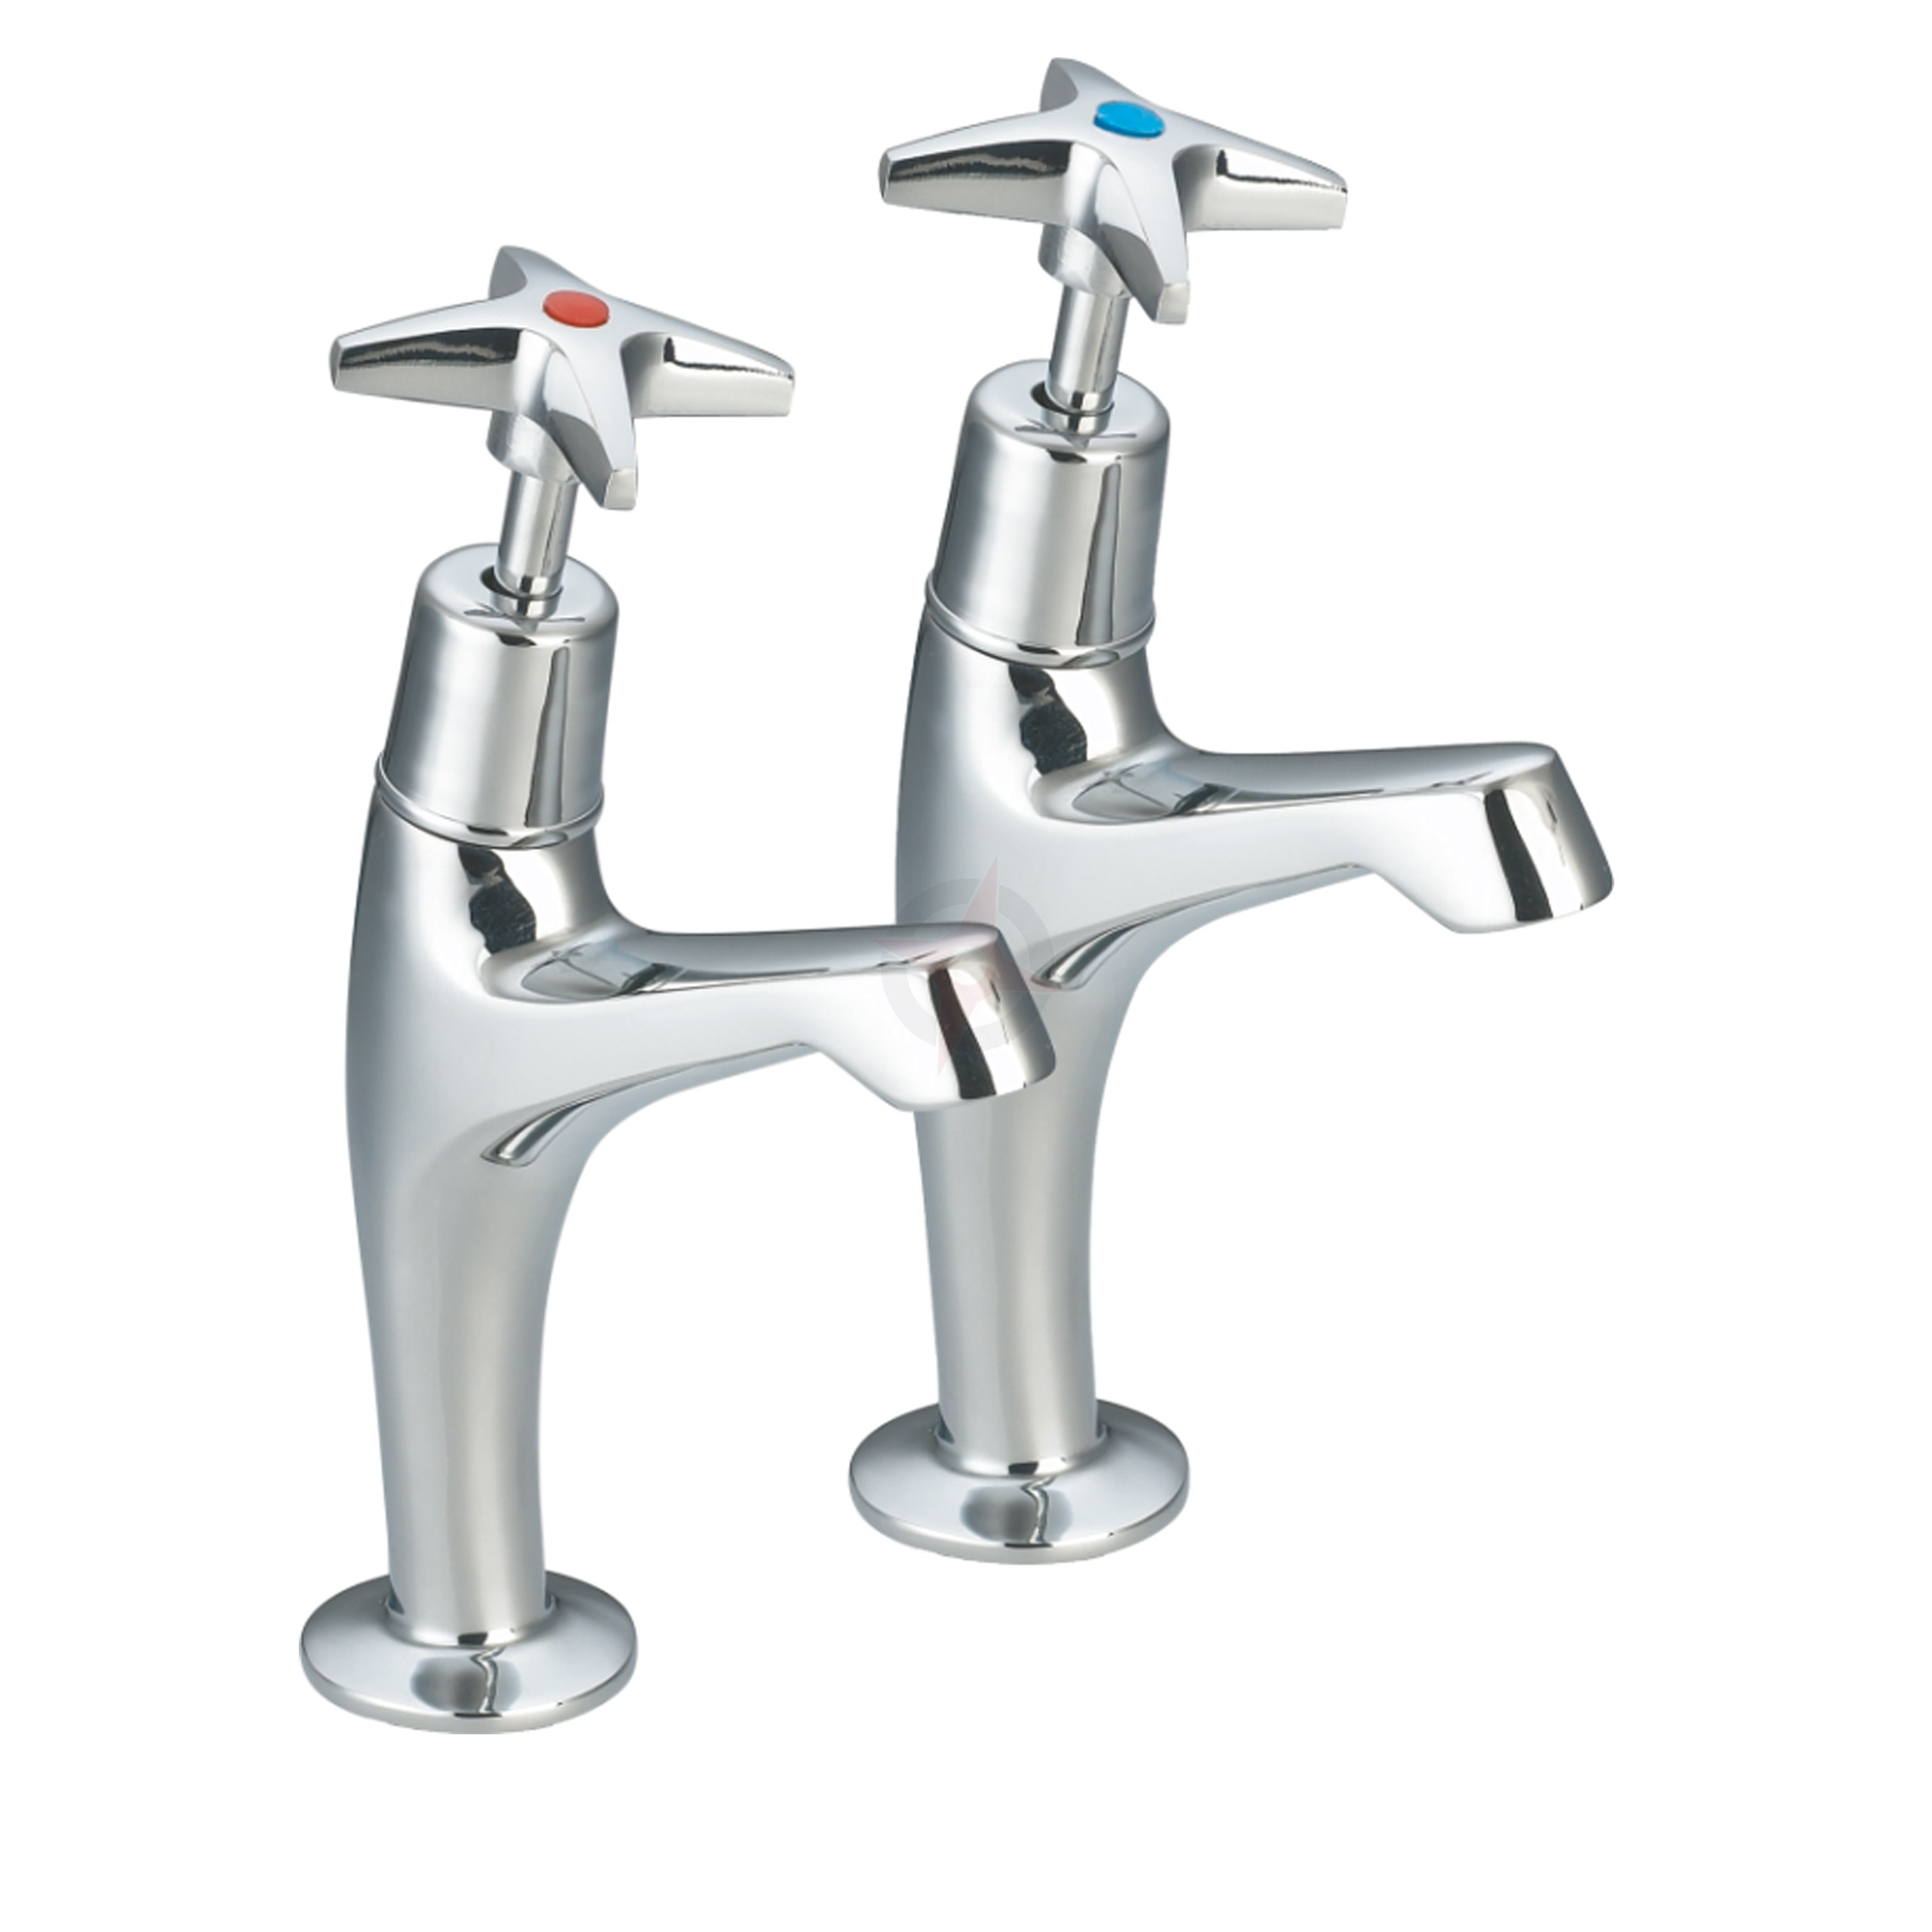 Lavata Cross Head High Neck Kitchen Sink Taps (Pair)